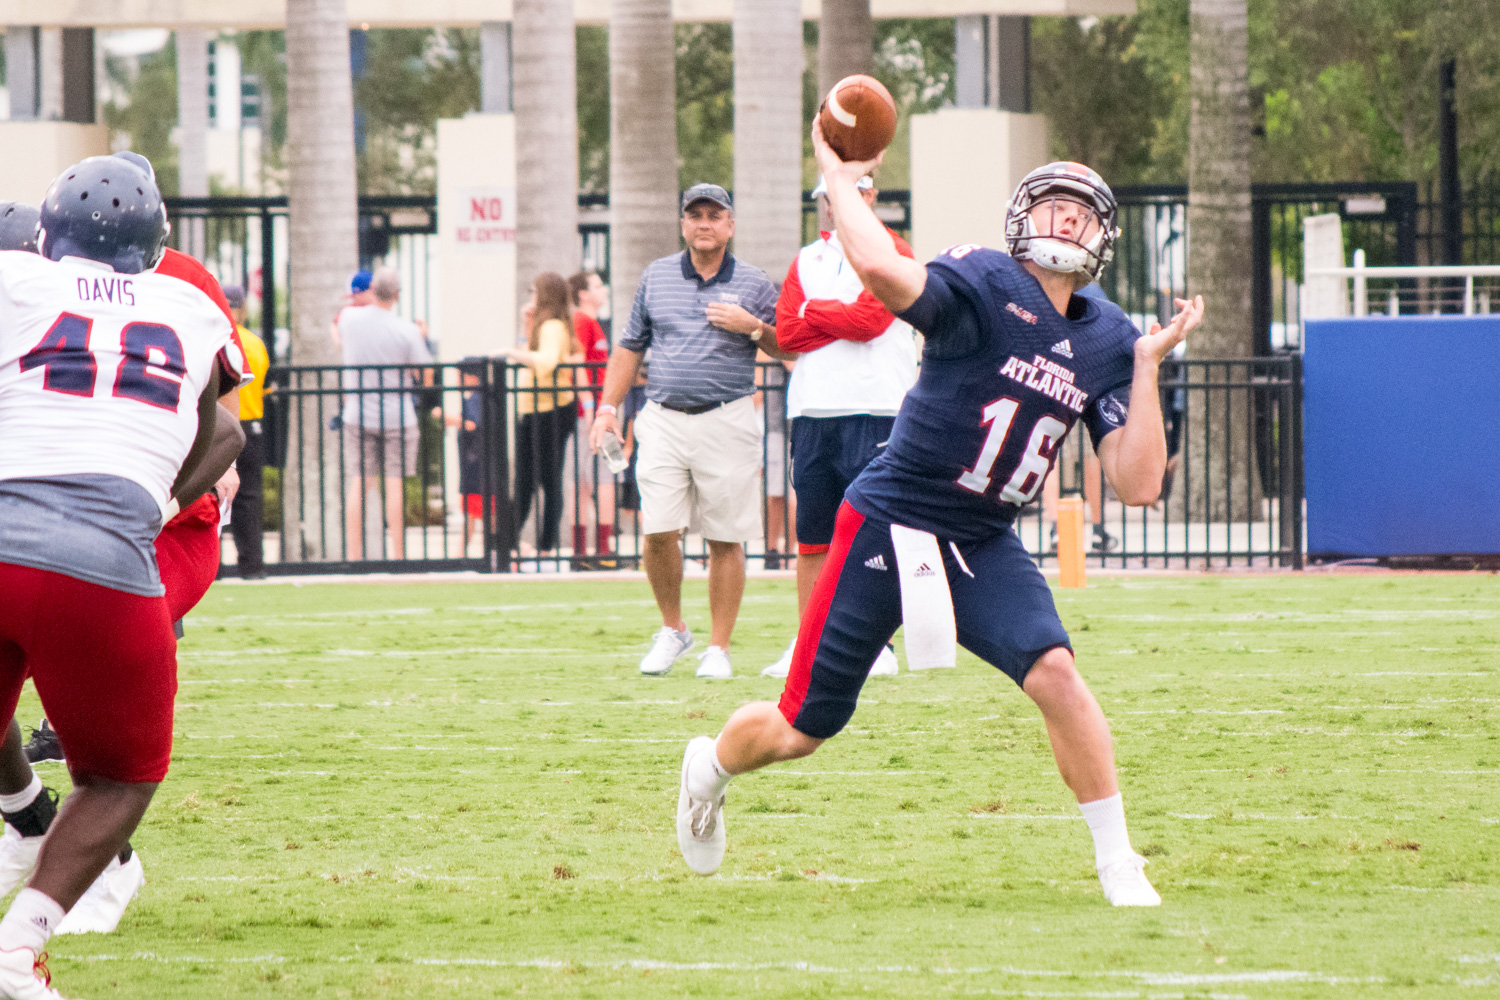 Redshirt junior Jason Driskel threw two touchdowns in the Owls spring game. Ryan Lynch | Editor in Chief